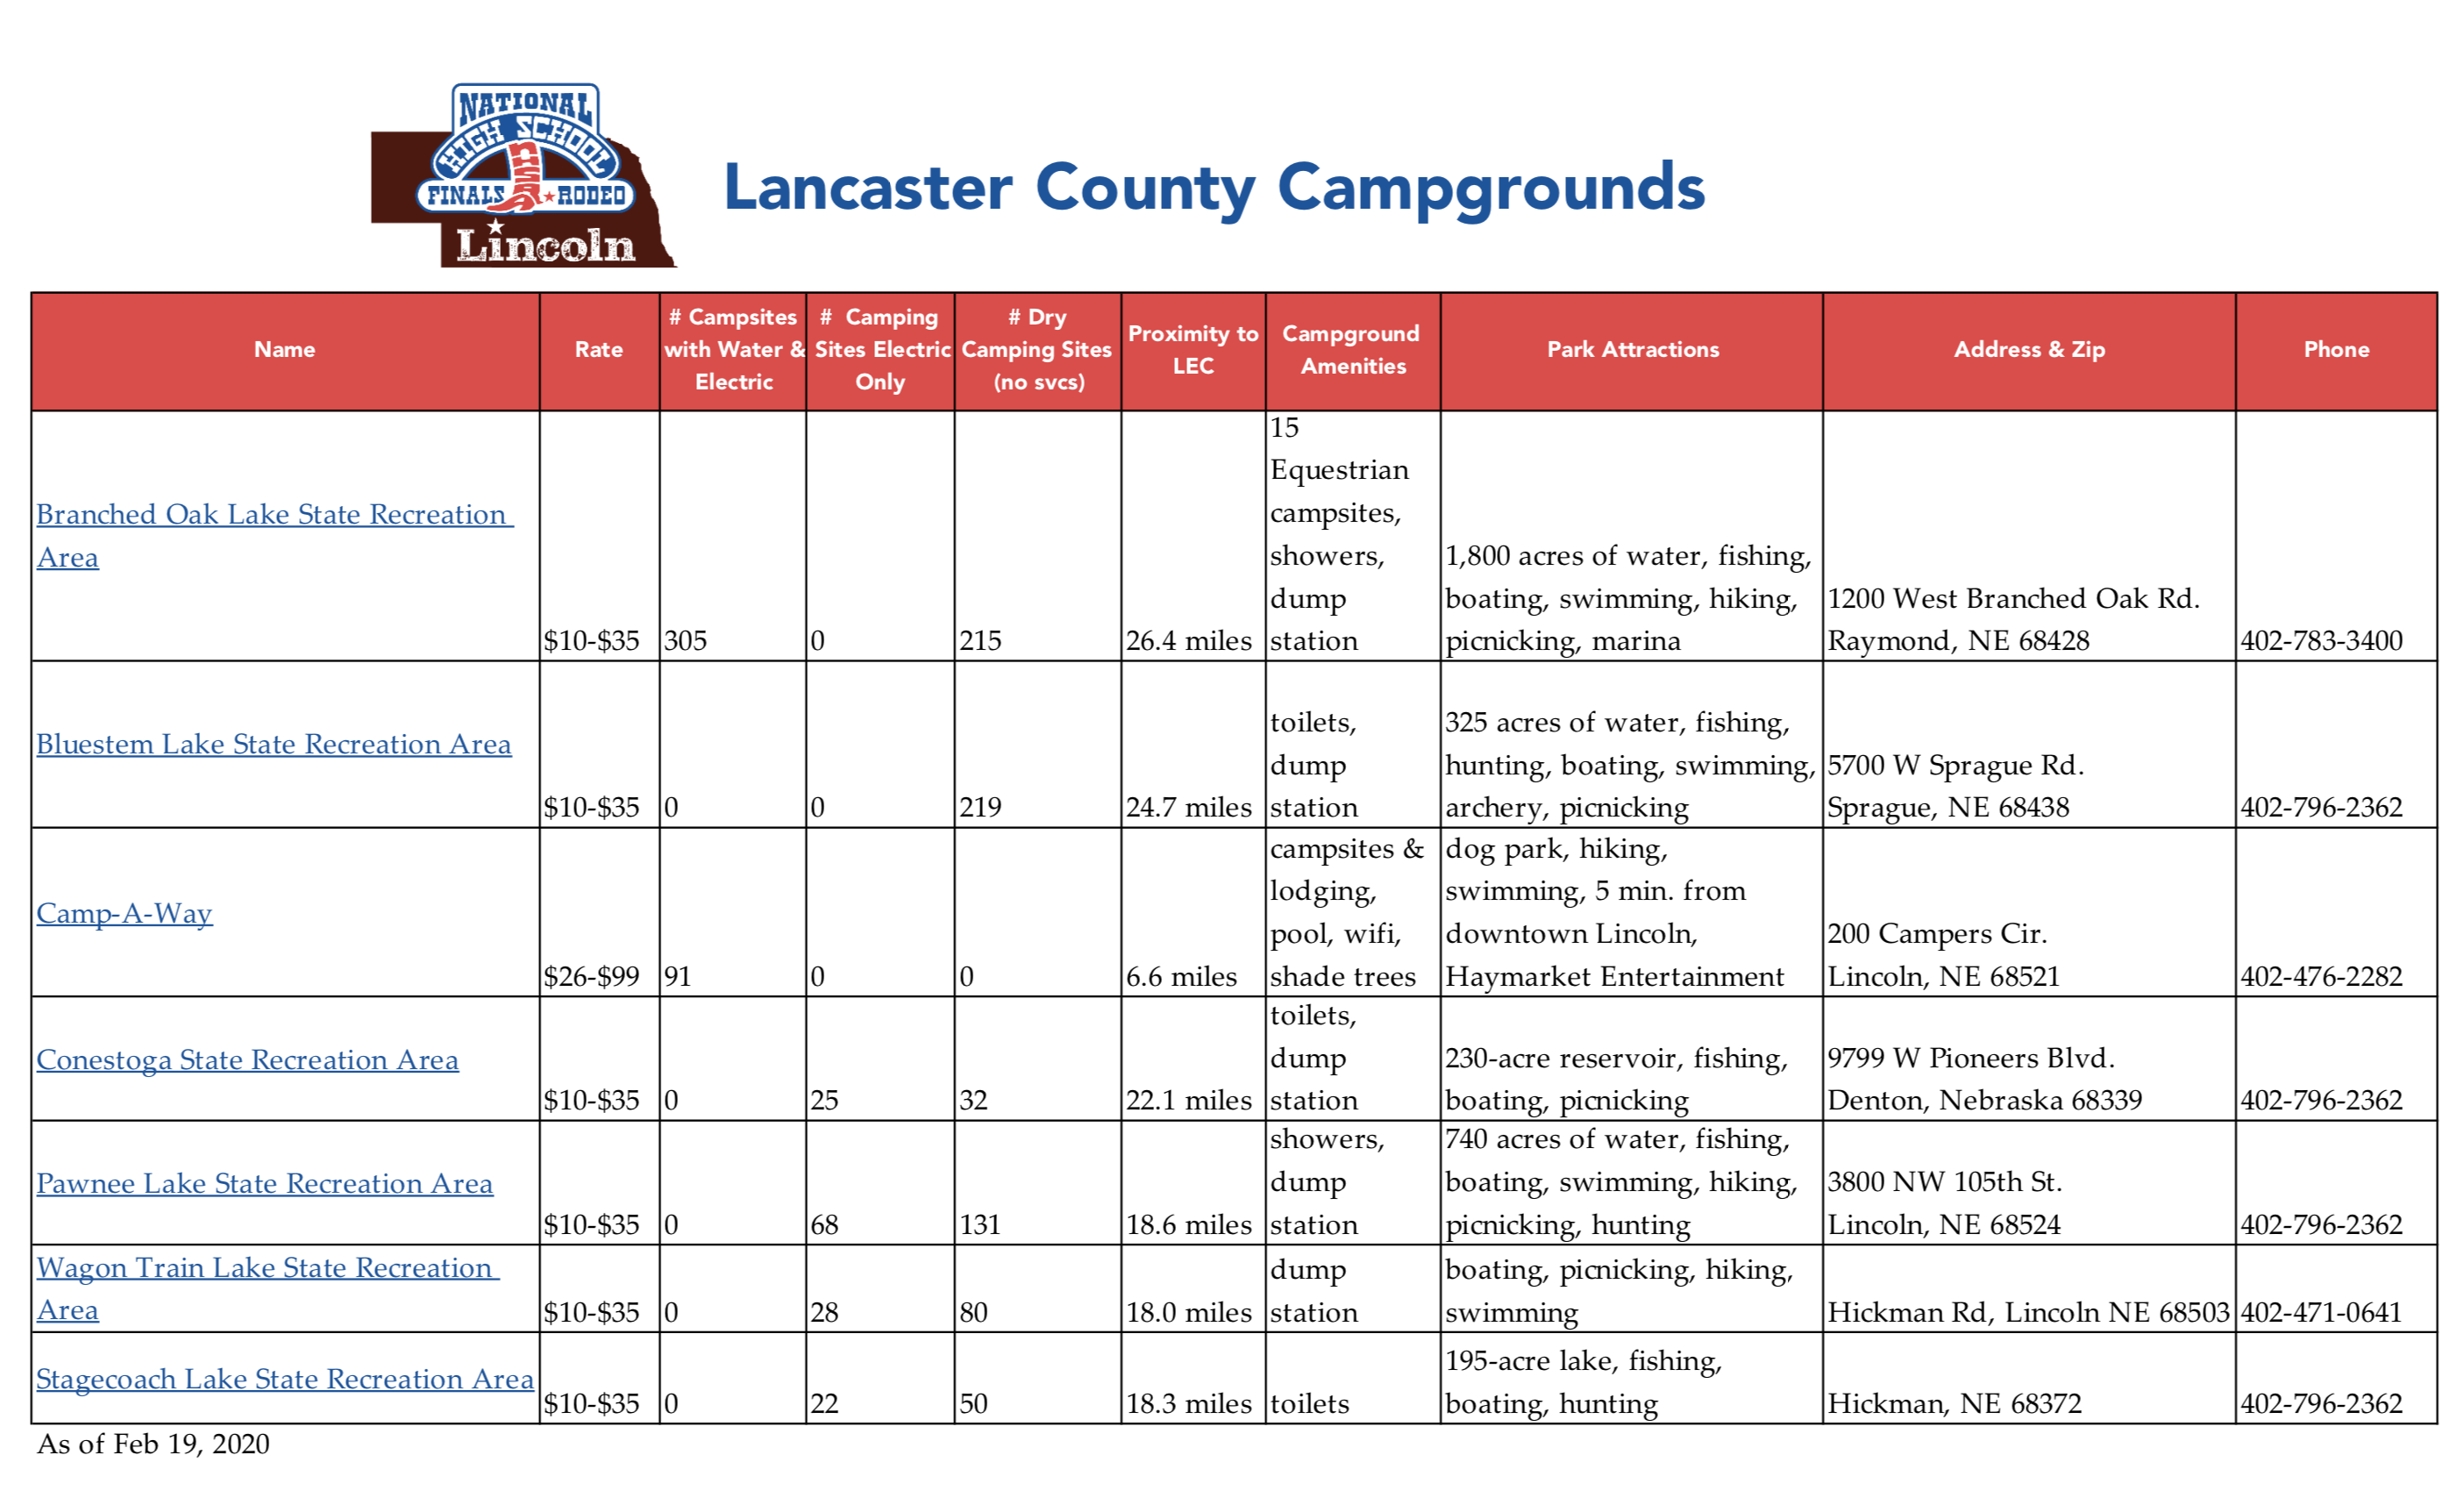 NHSFR Lincoln Lancaster County Campsites